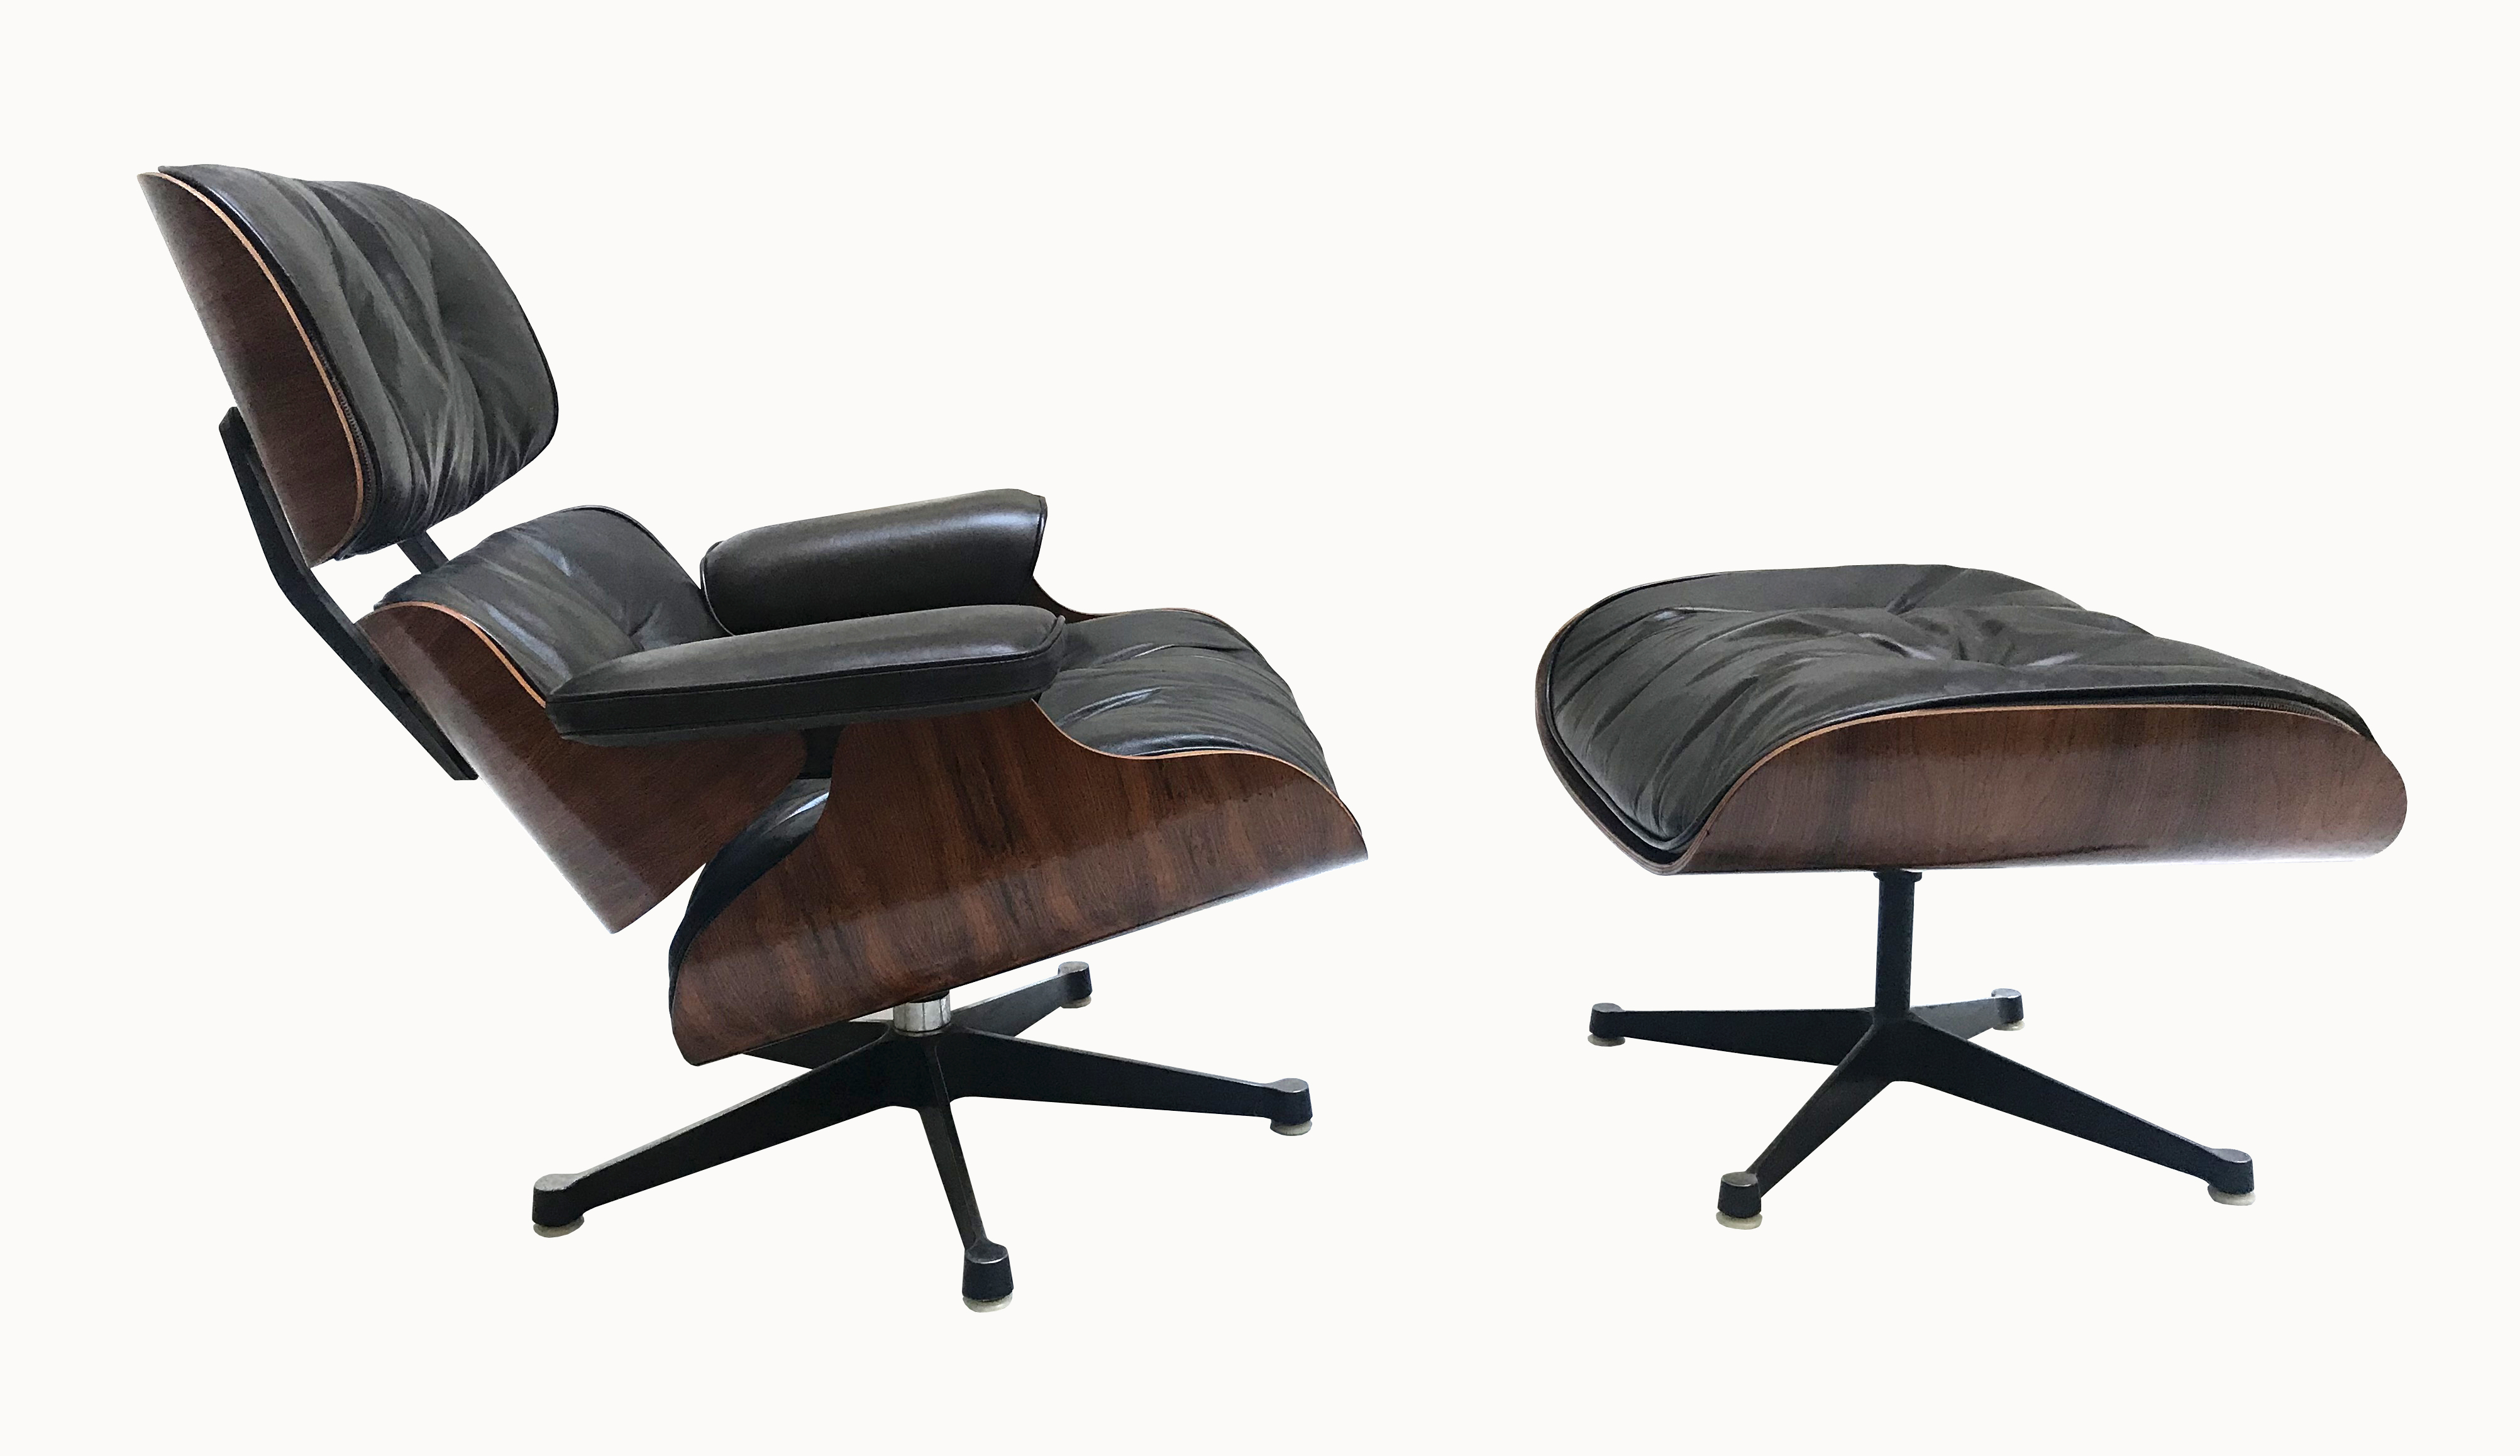 Lounge chair Eames mobilier international 1